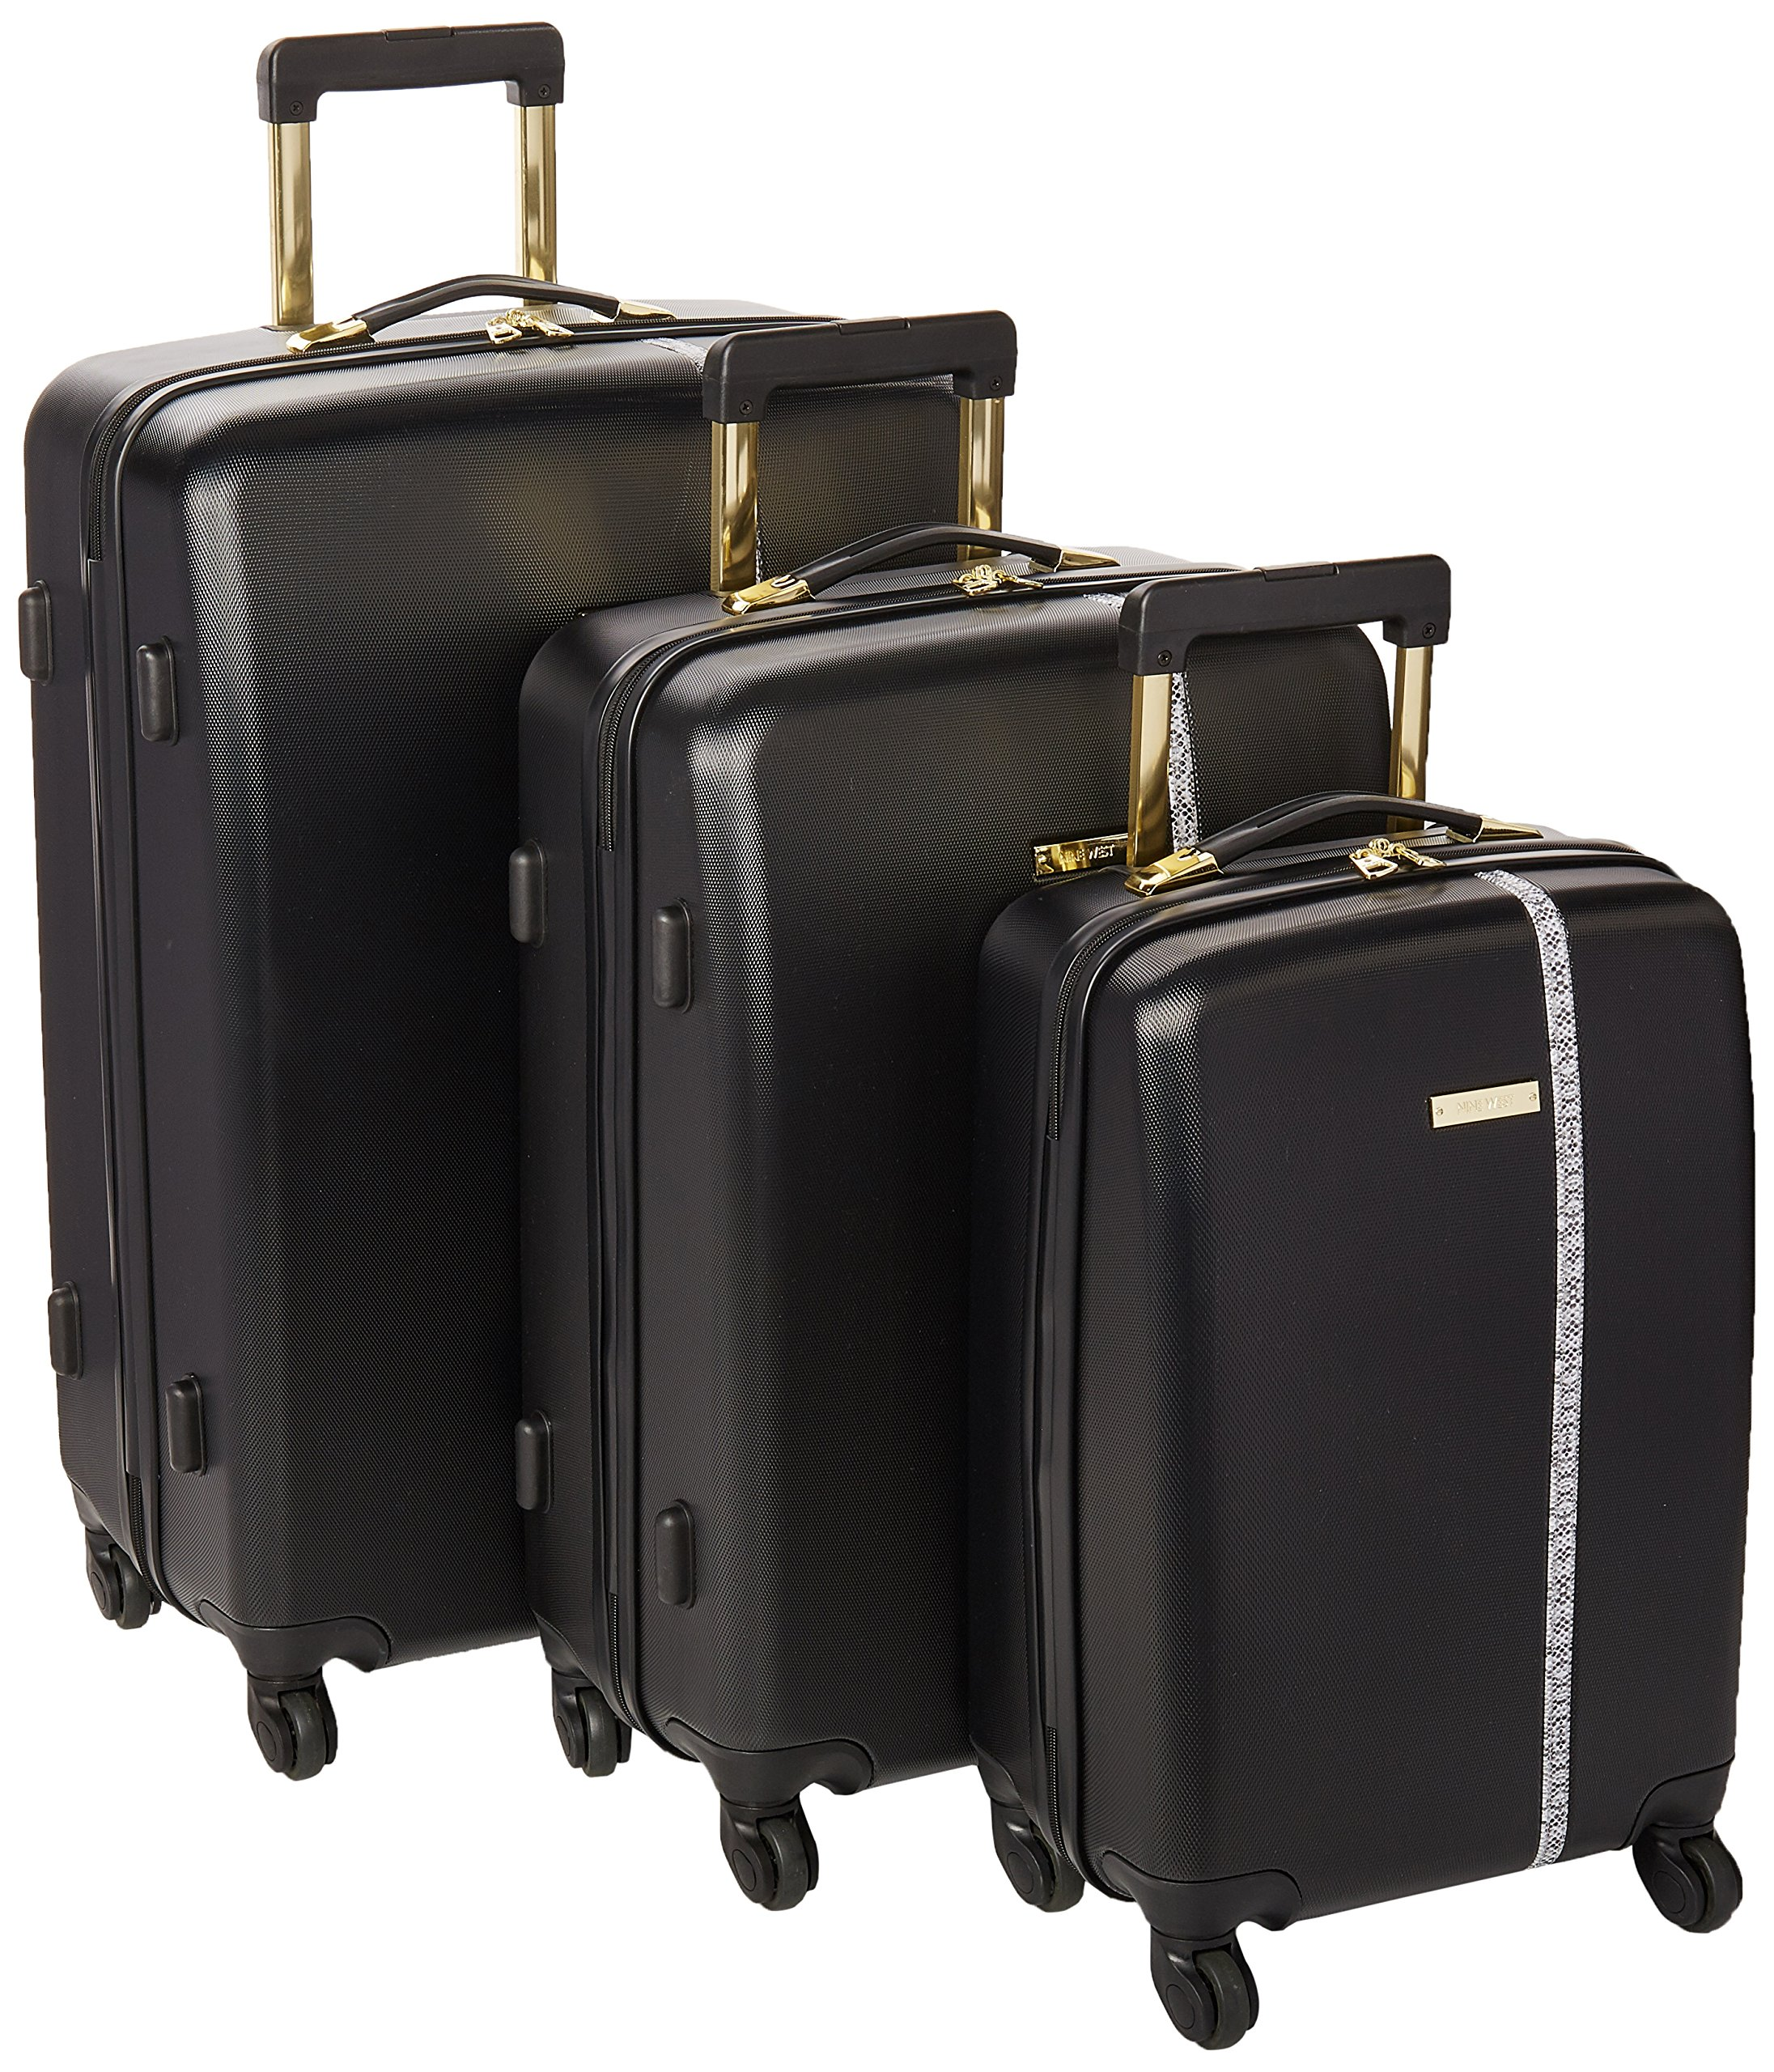 Ninewest Noelle 3 Piece Hardside Luggage Set (28.5In/24.5In/20.5In), Black